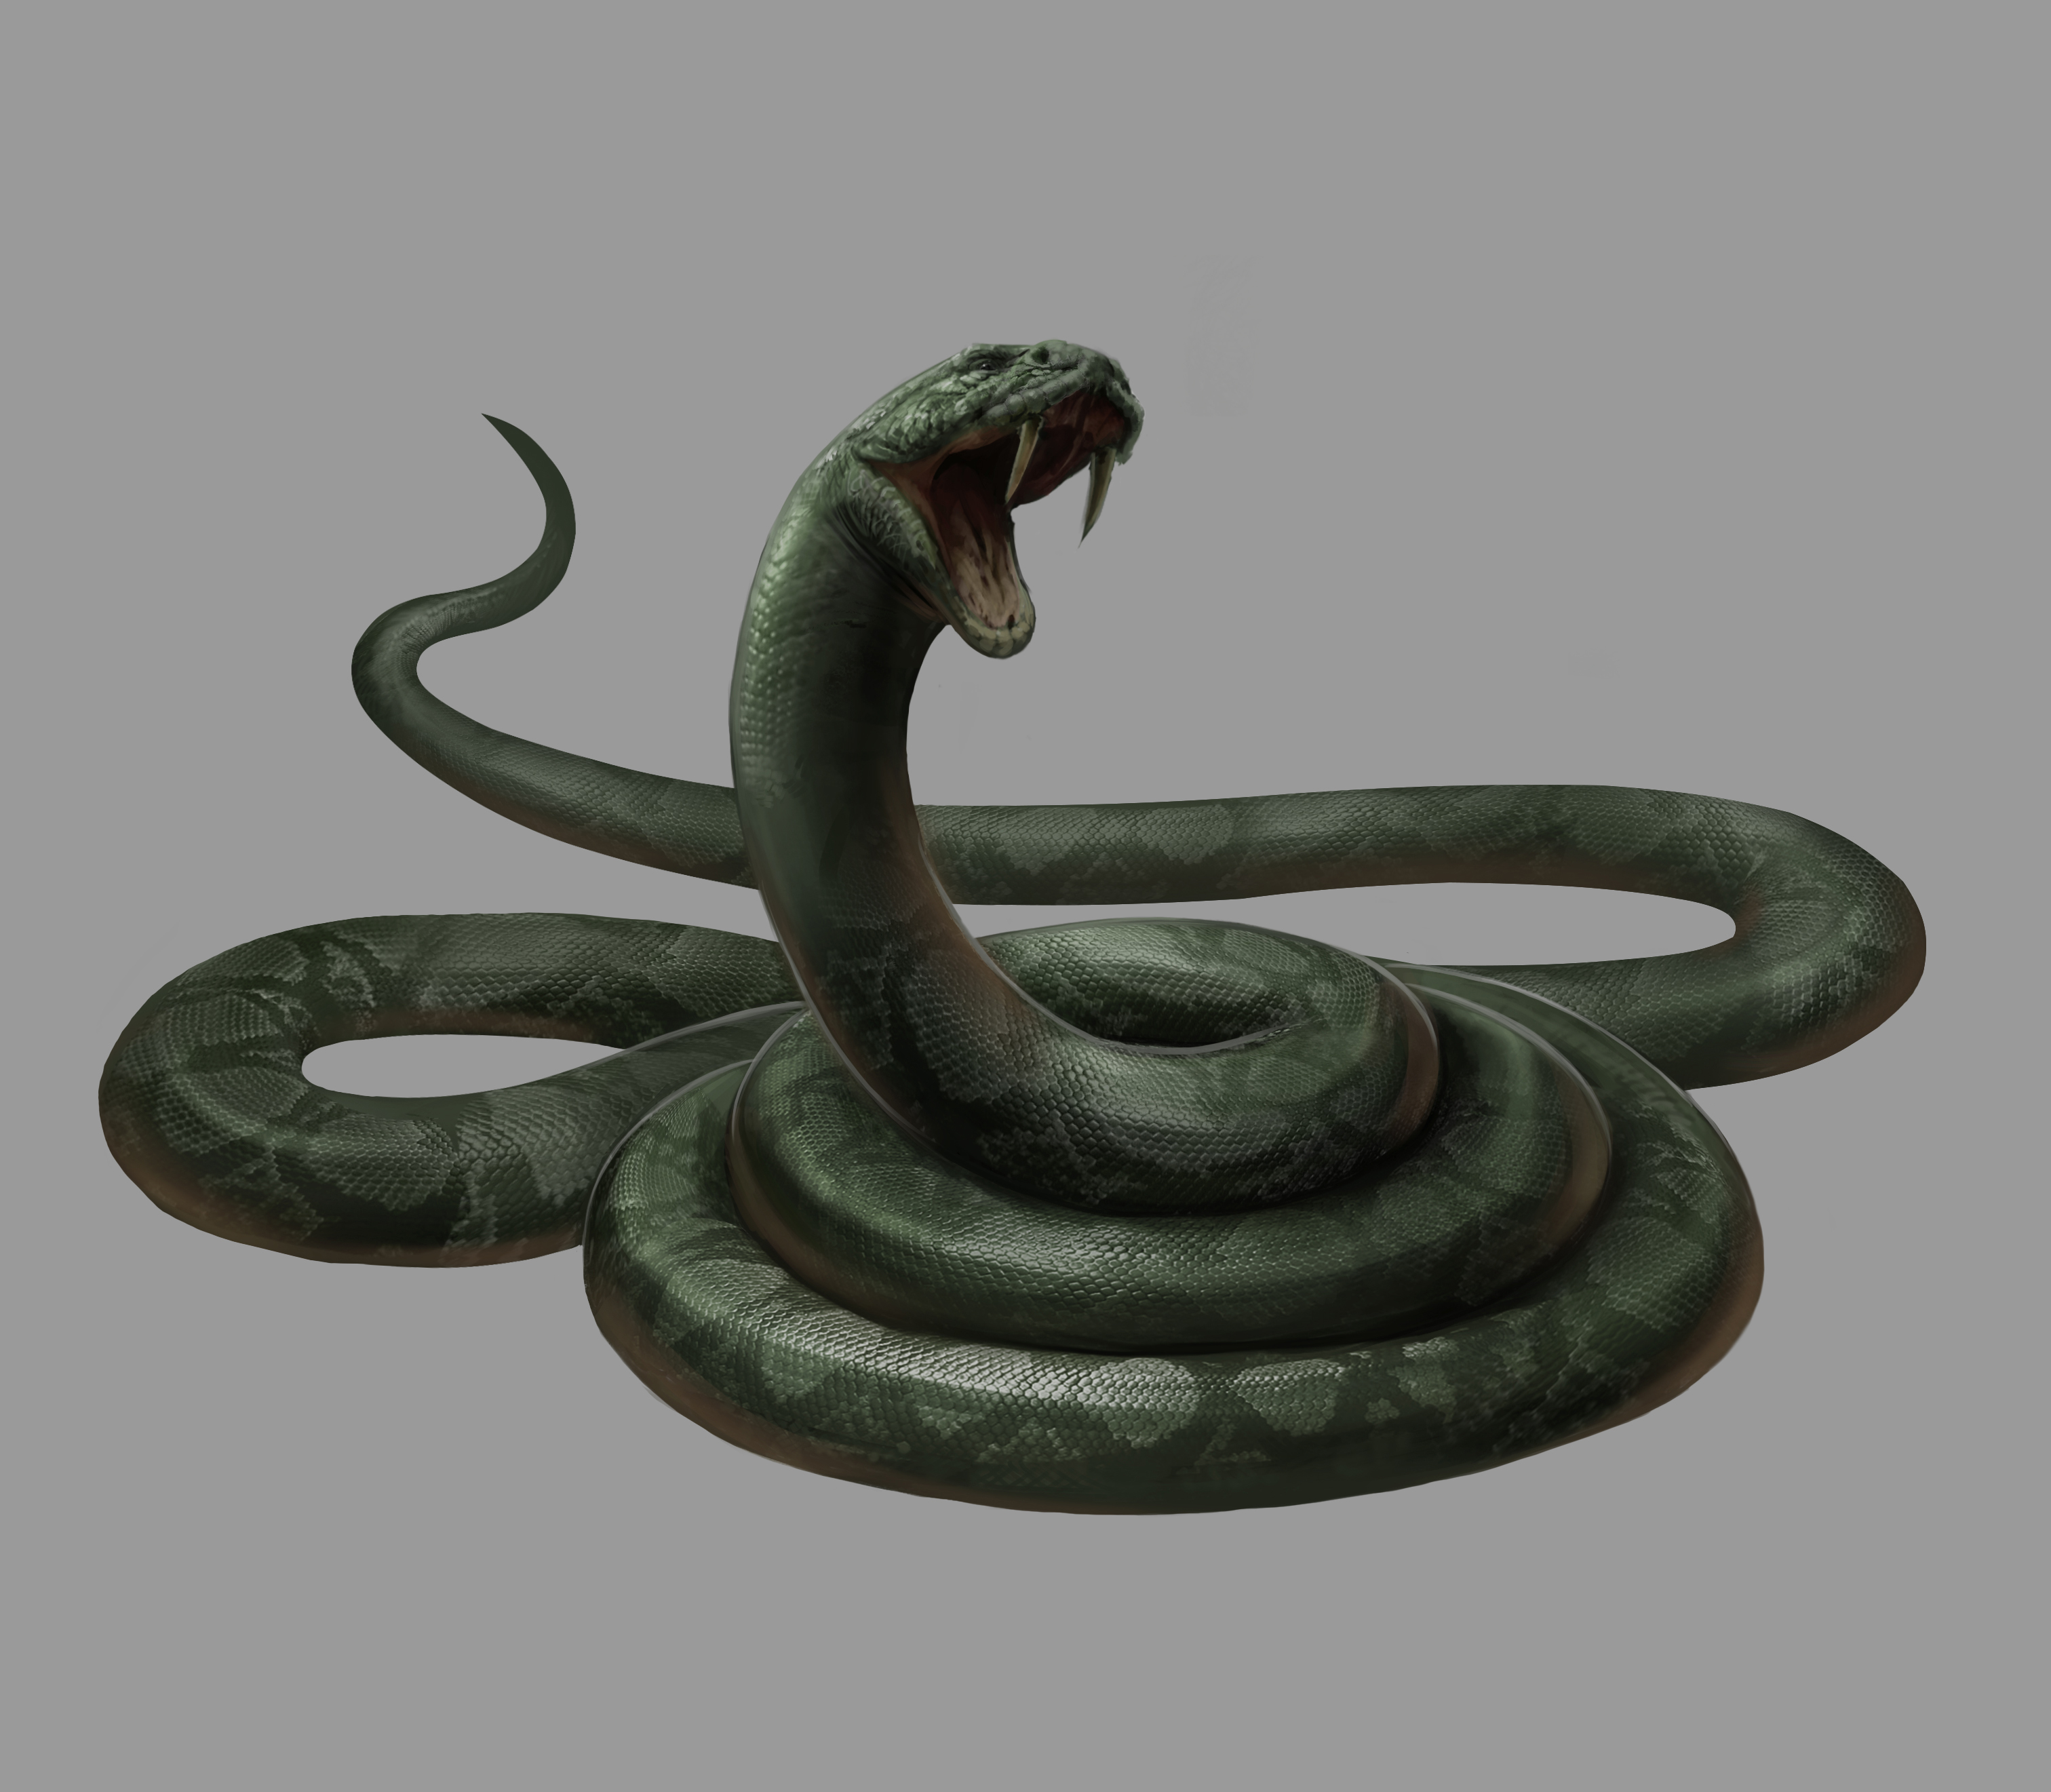 Illustration of Voldemort's snake Nagini